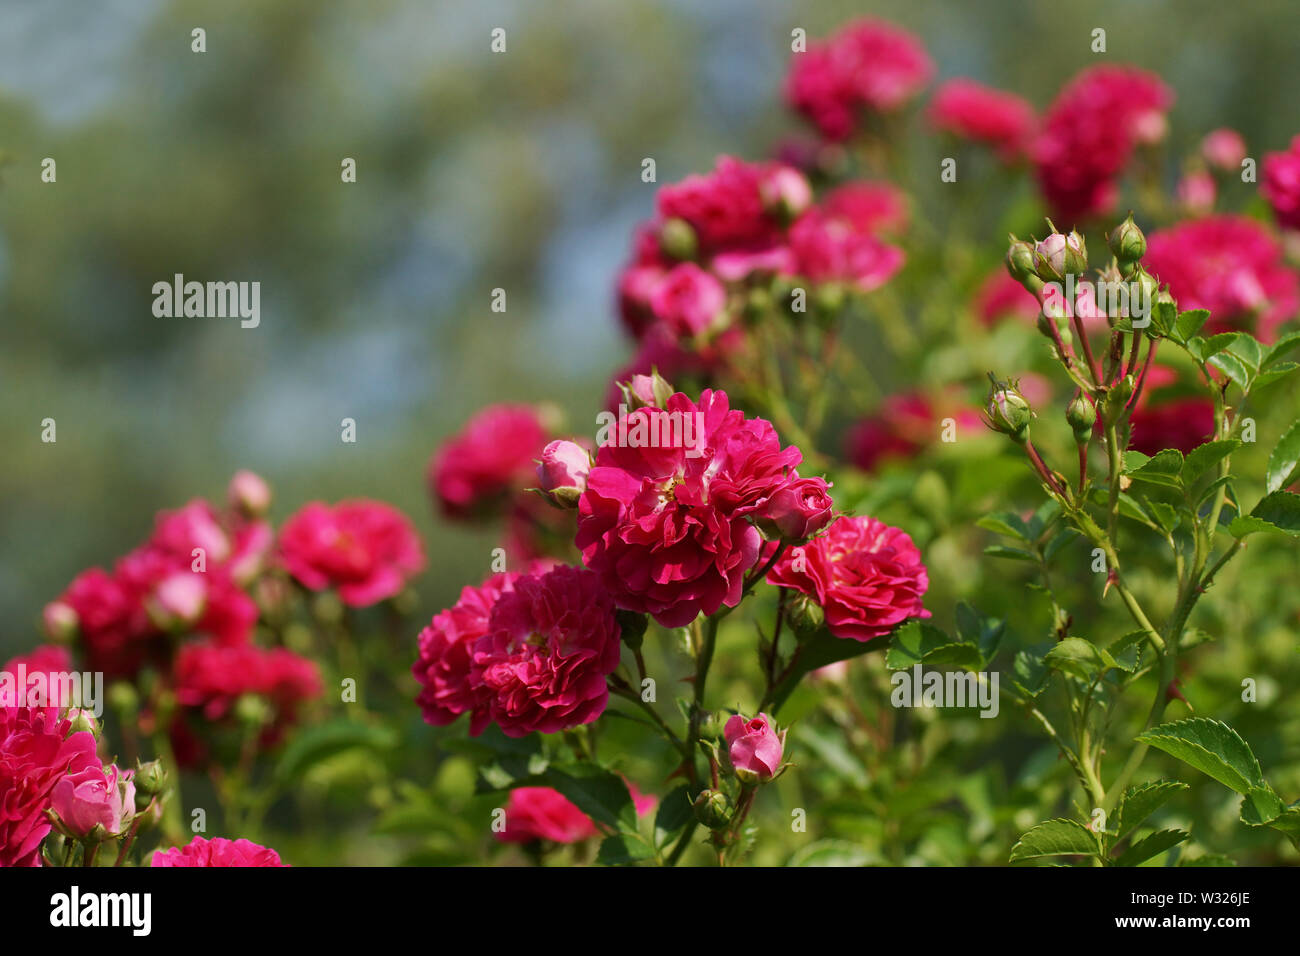 Pink roses lit by a warm summer sun against a beautiful green bokeh, abstract background, mosk up for your design. Many pink flowers close up. - Stock Image